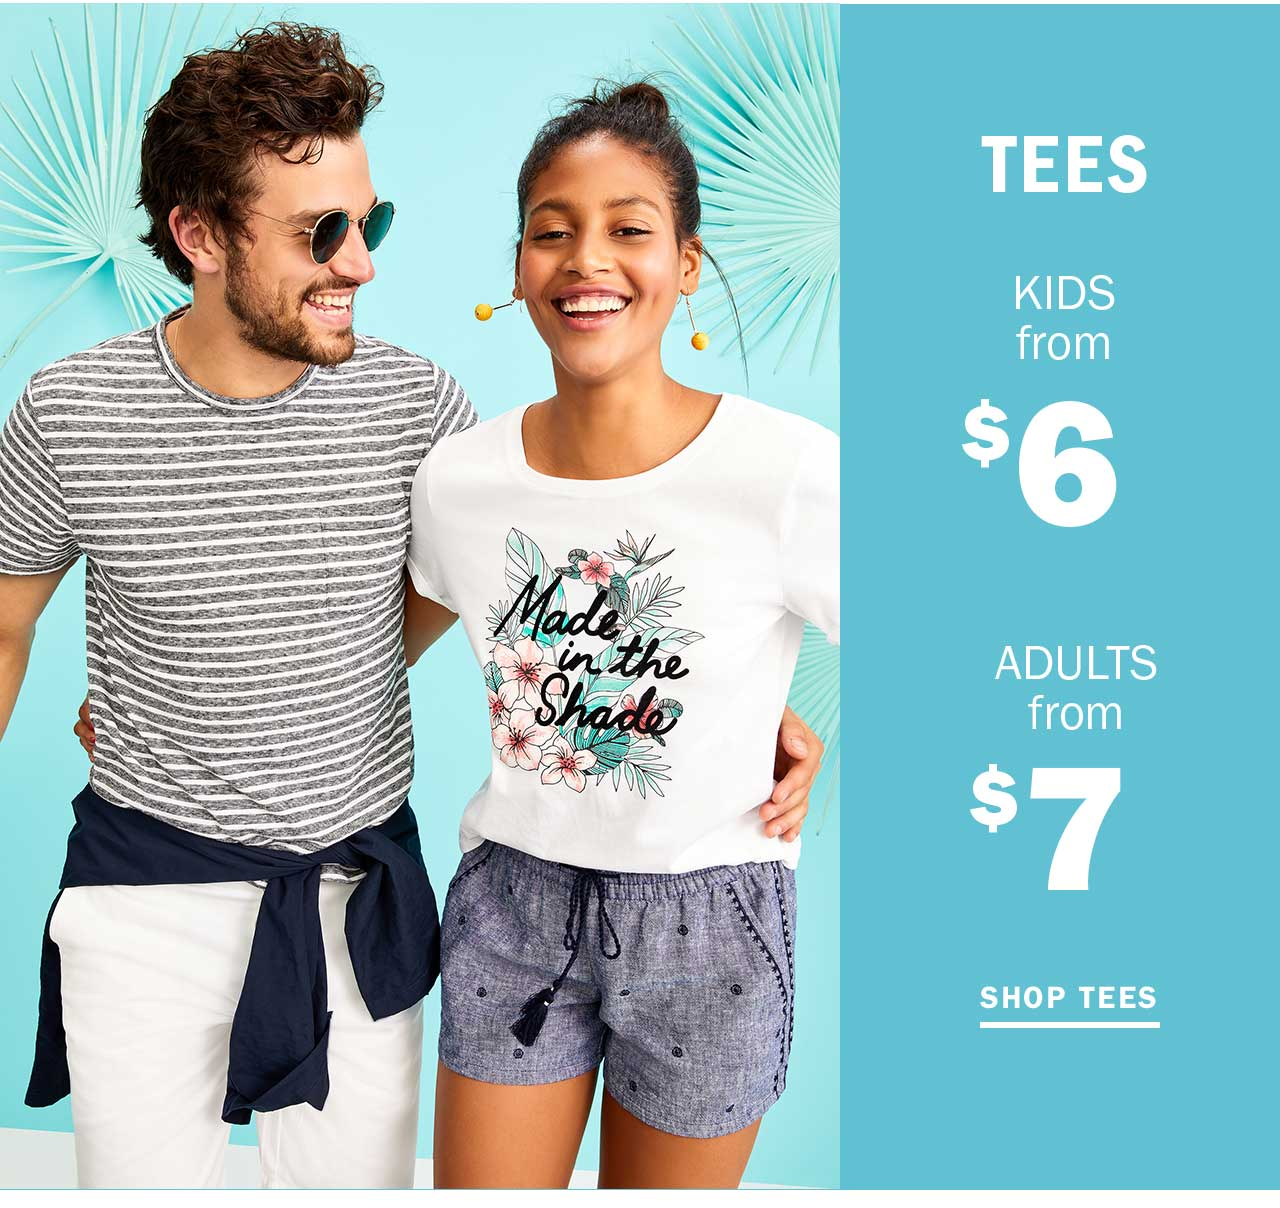 TEES KIDS from $6 | ADULTS from $7 | SHOP TEES